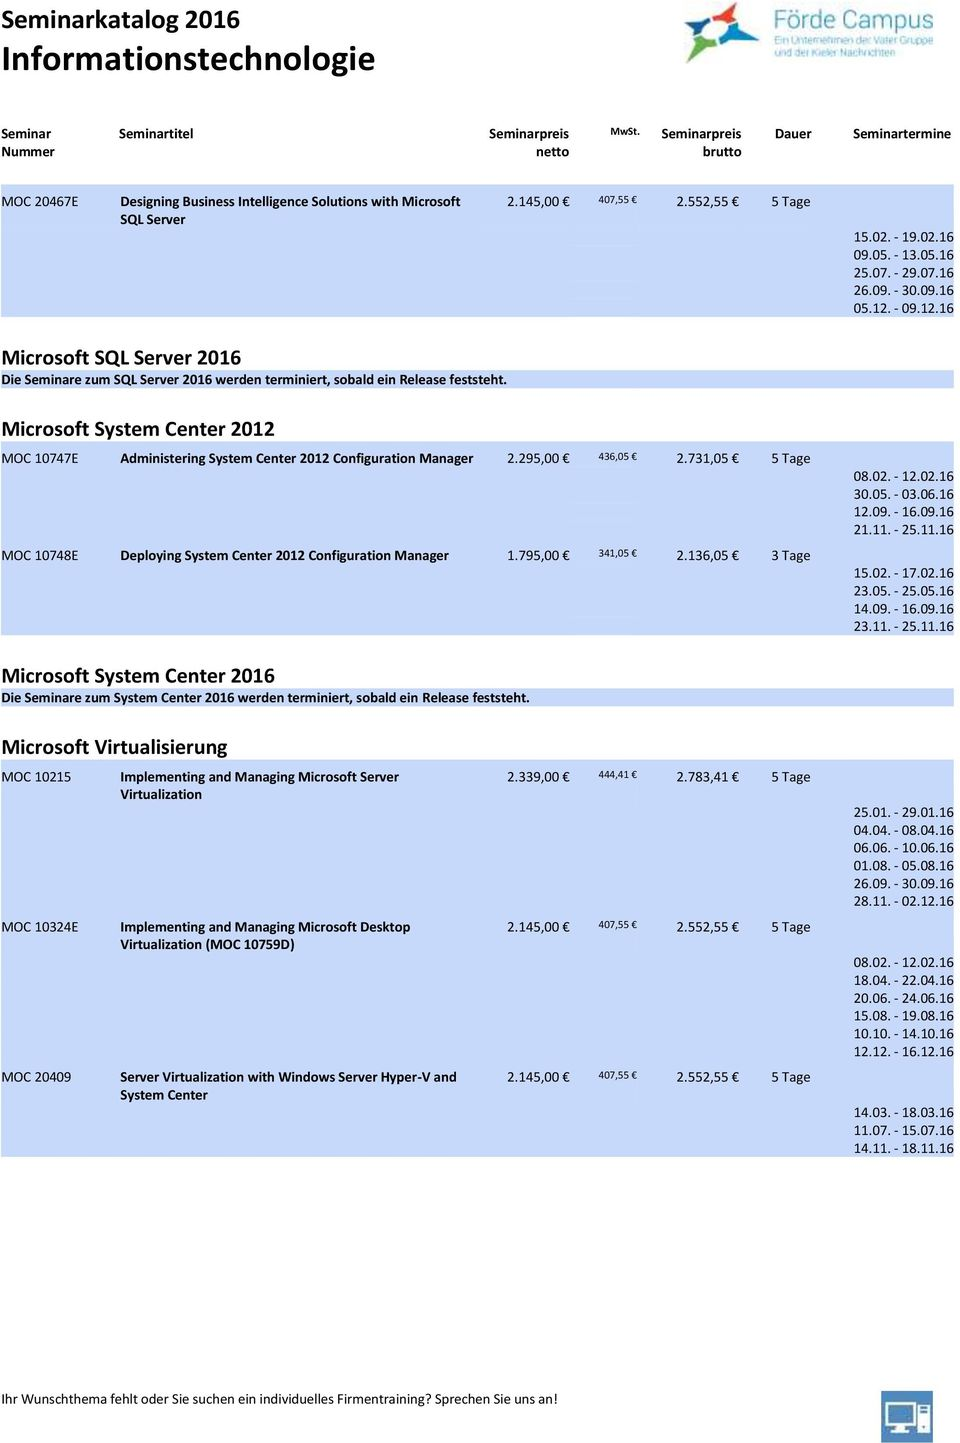 Microsoft System Center 2012 MOC 10747E Administering System Center 2012 Configuration Manager 2.295,00 436,05 2.731,05 5 Tage MOC 10748E Deploying System Center 2012 Configuration Manager 1.